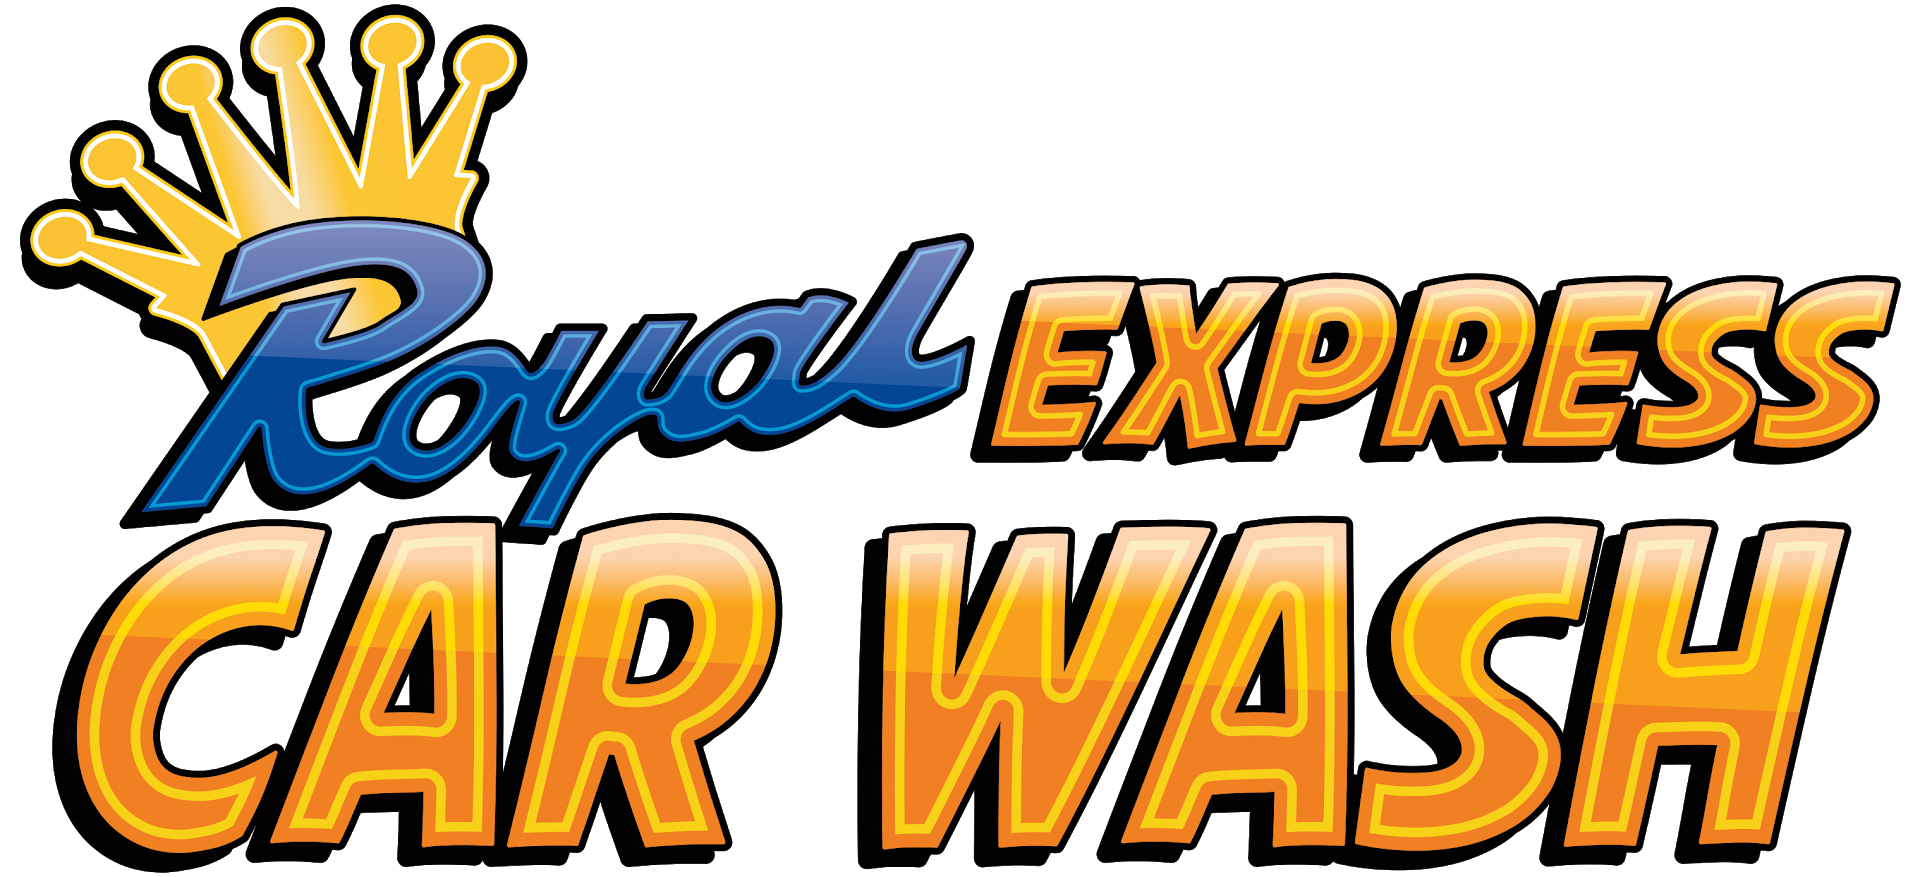 Royal Express Car Wash